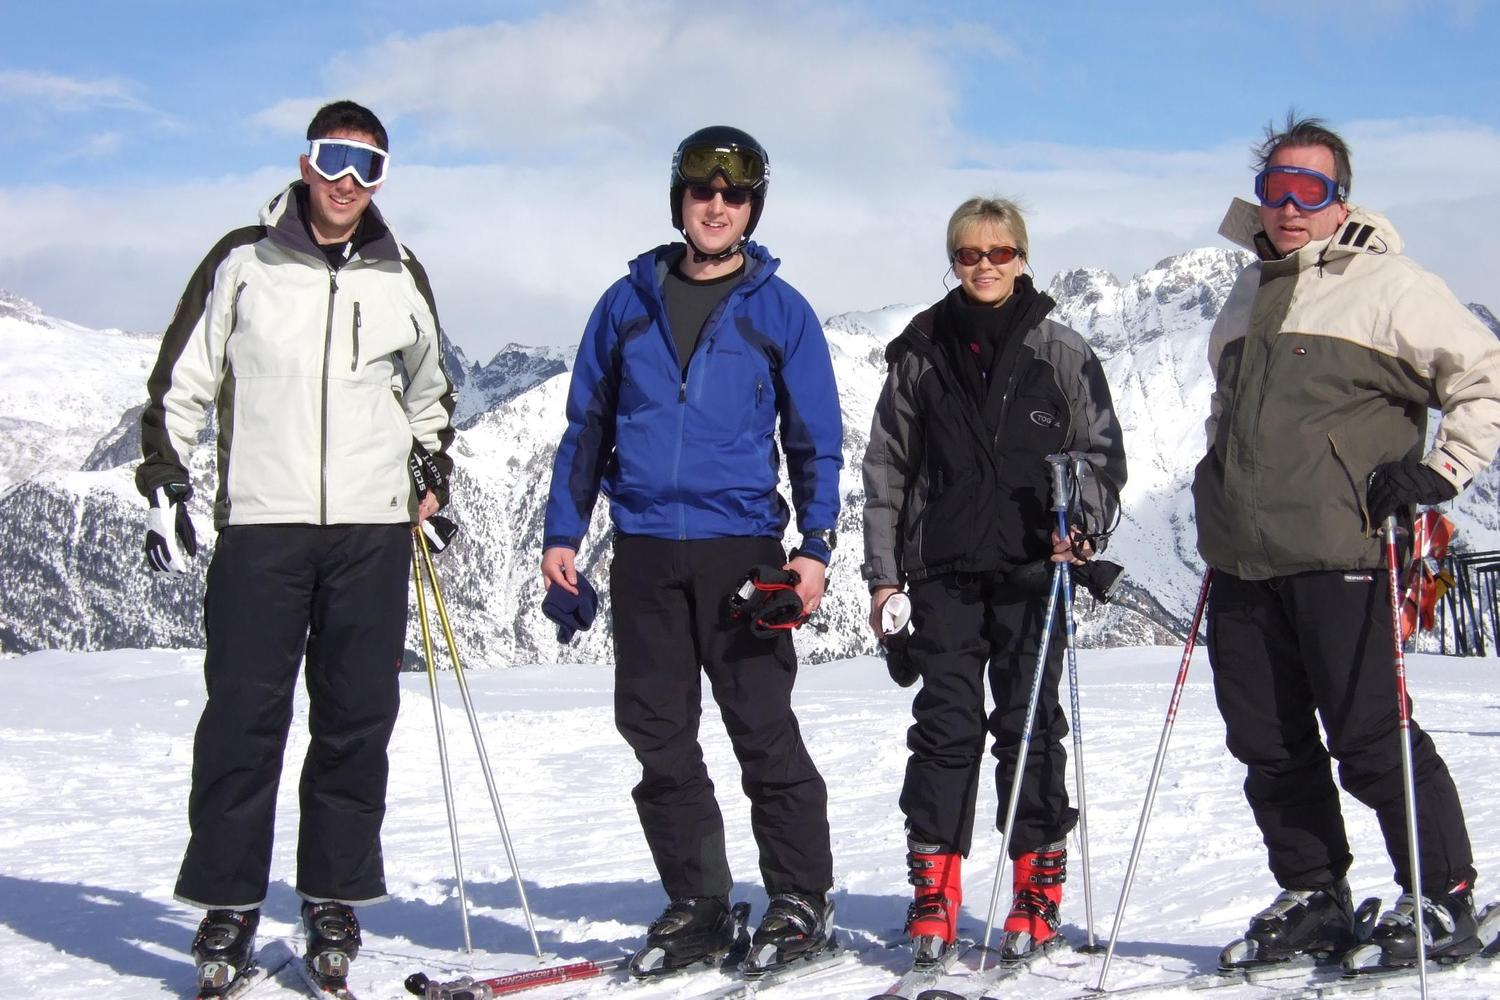 Happy skiers at Cerler in the Spanish Pyrenees